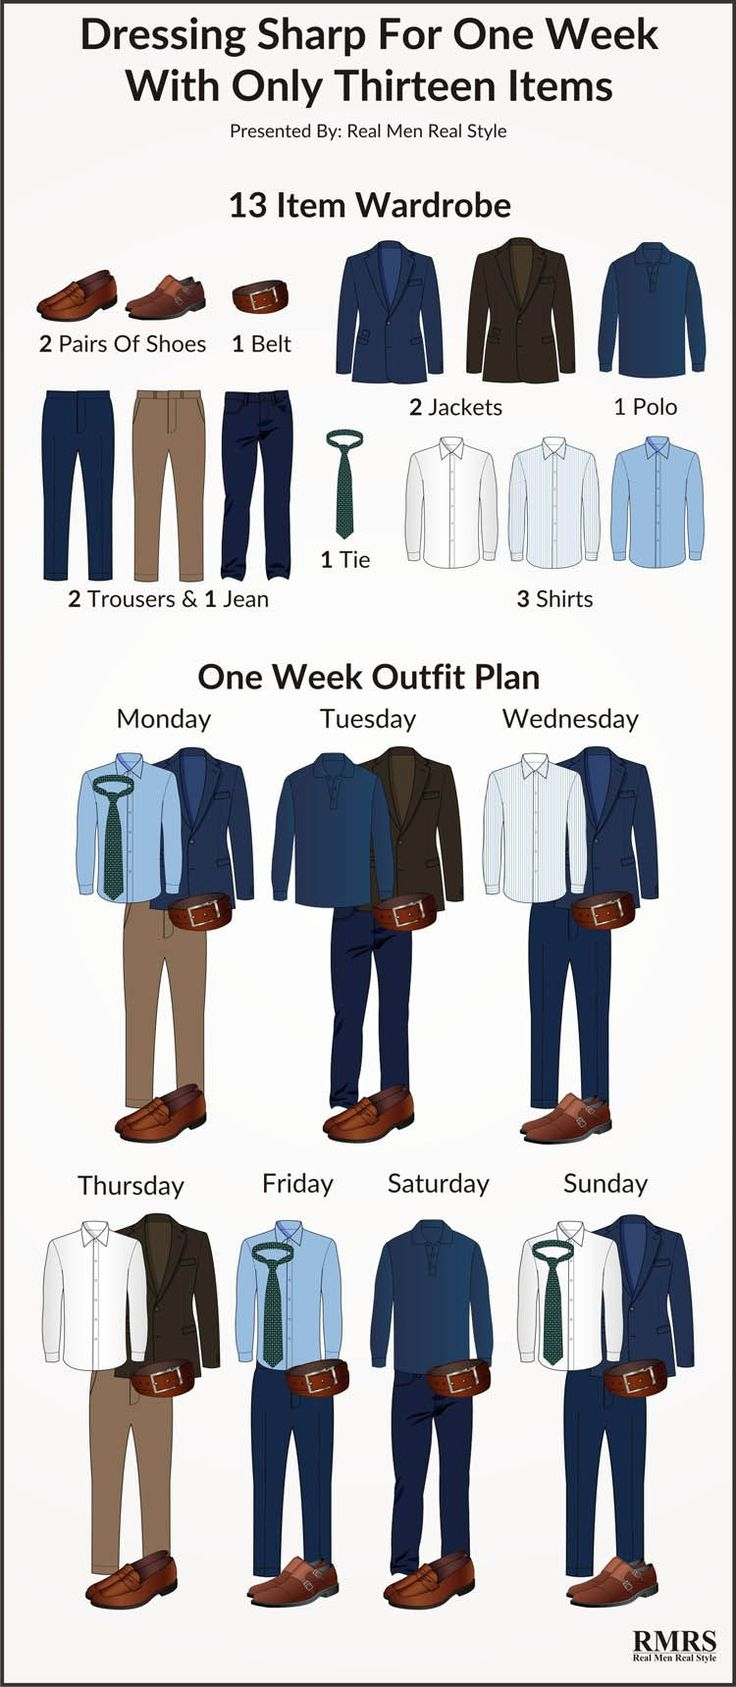 Dressing Sharp For One Week with only 13 Items